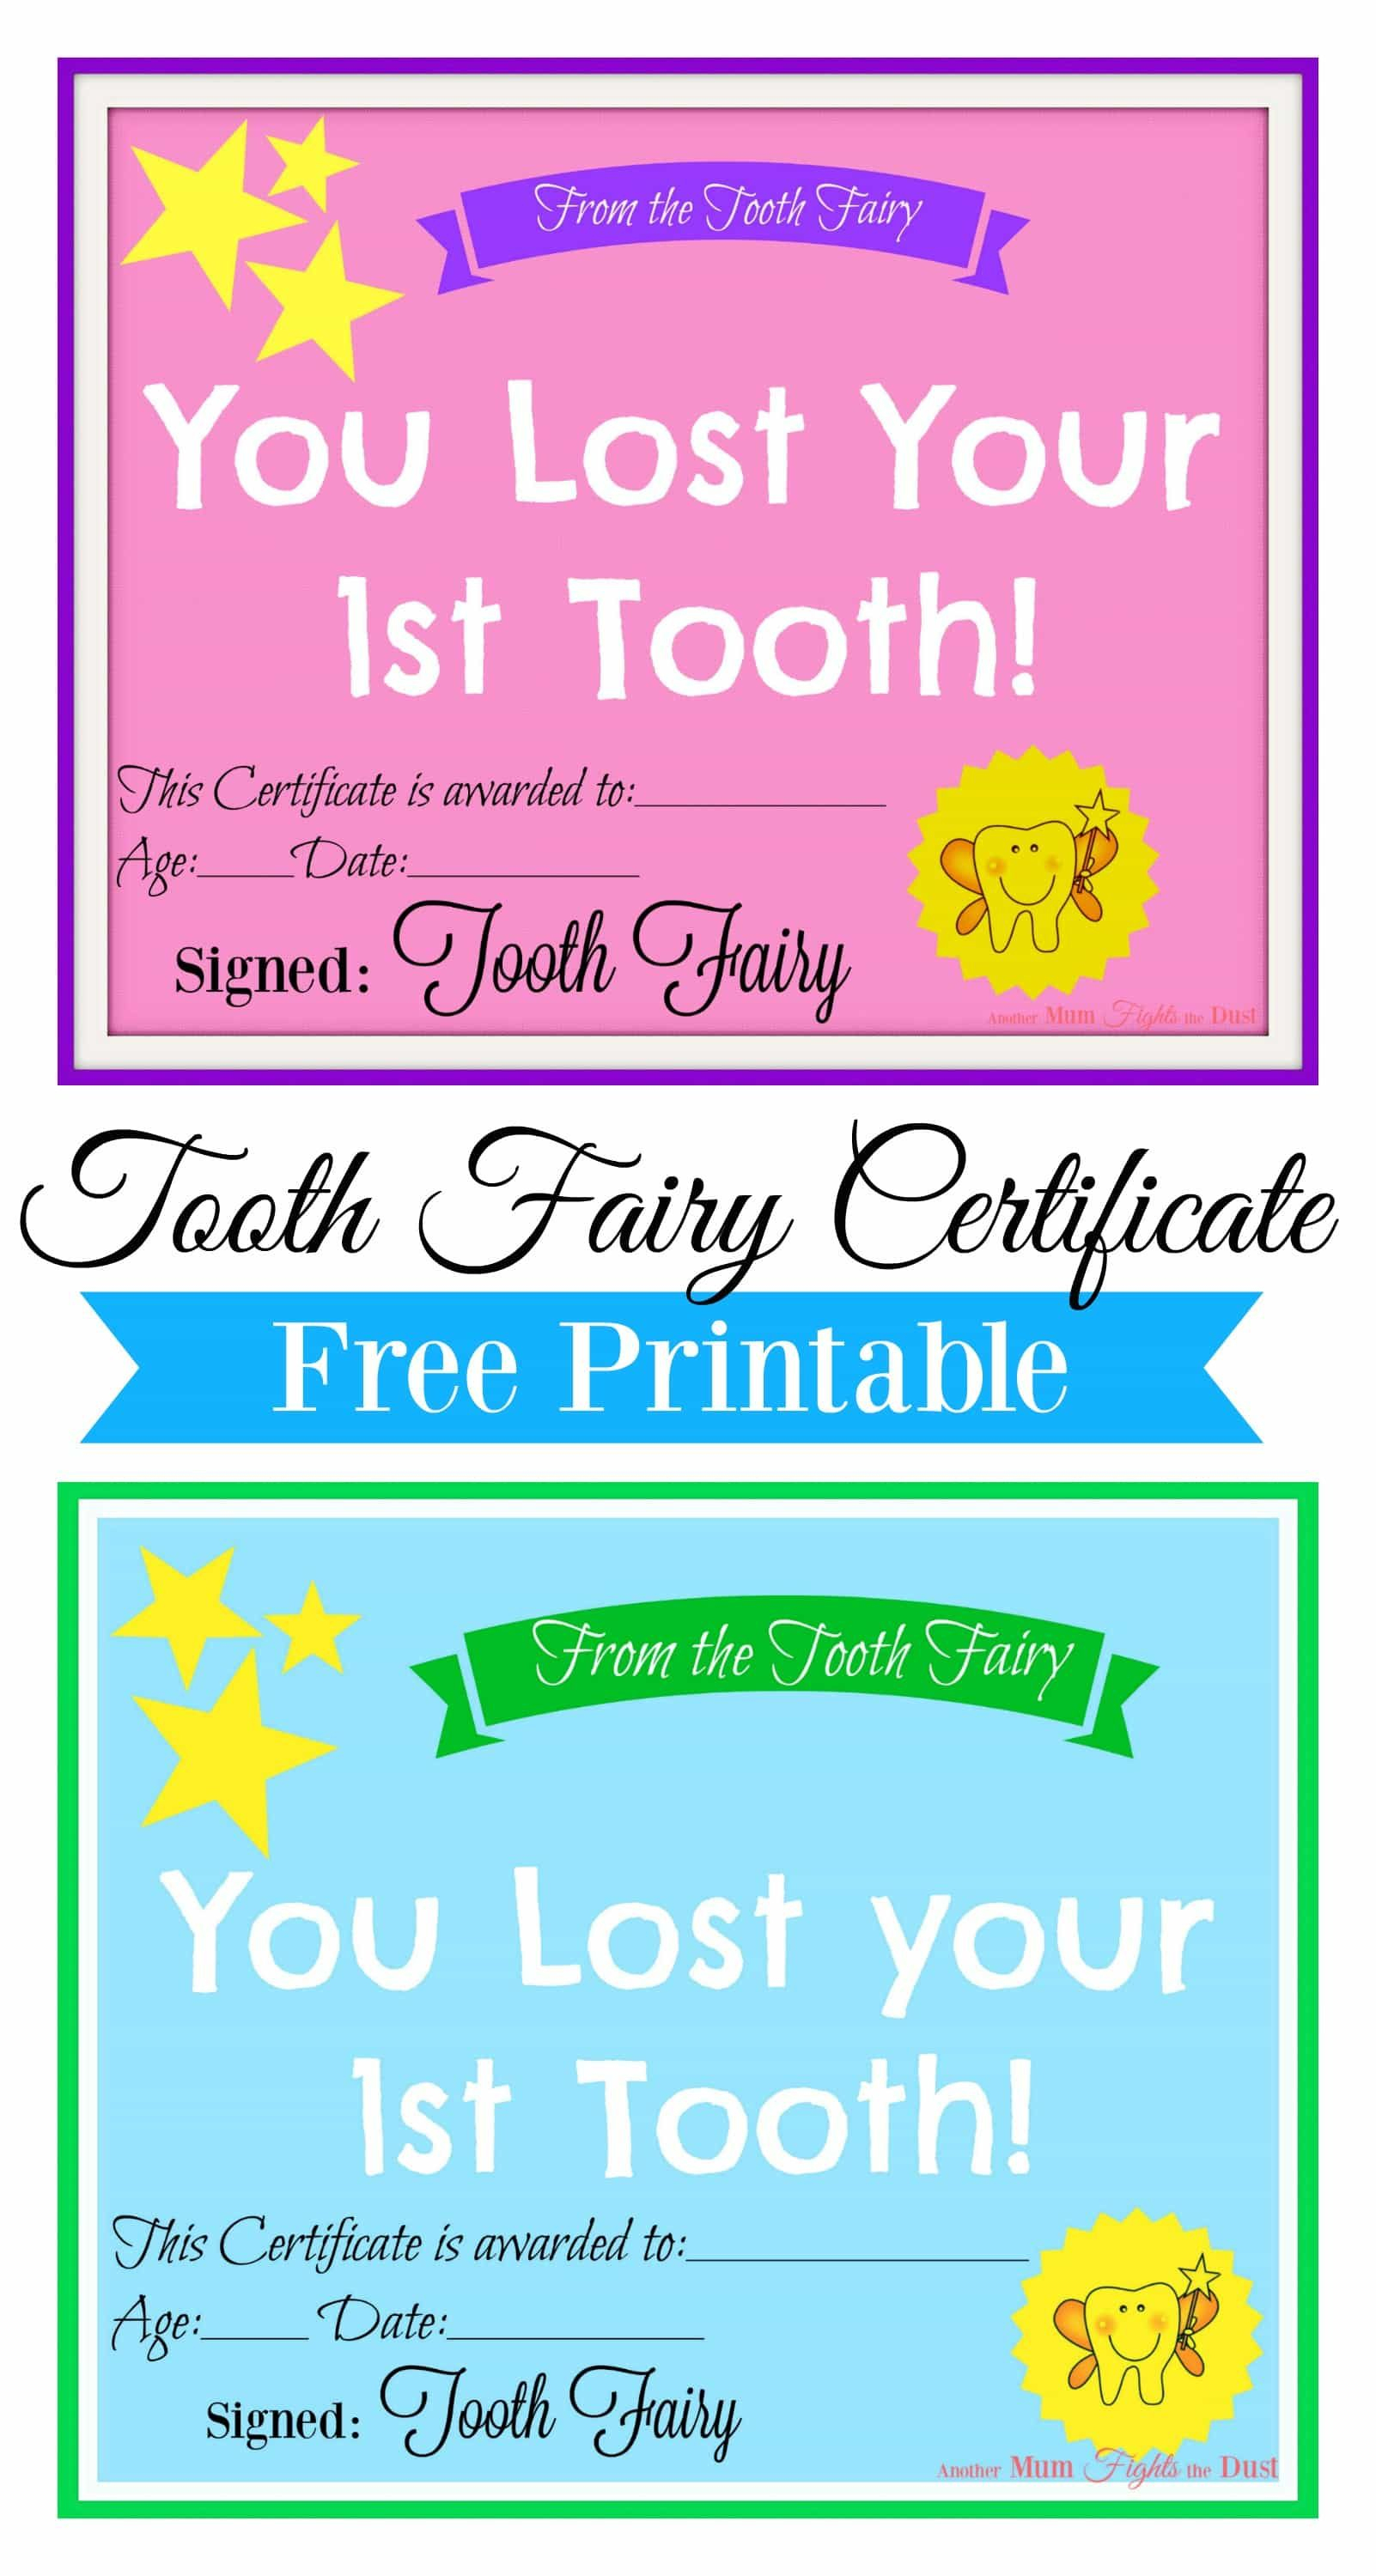 Free Printable Tooth Fairy Certificate   Tooth Fairy Ideas   Tooth - Free Printable Tooth Fairy Certificate